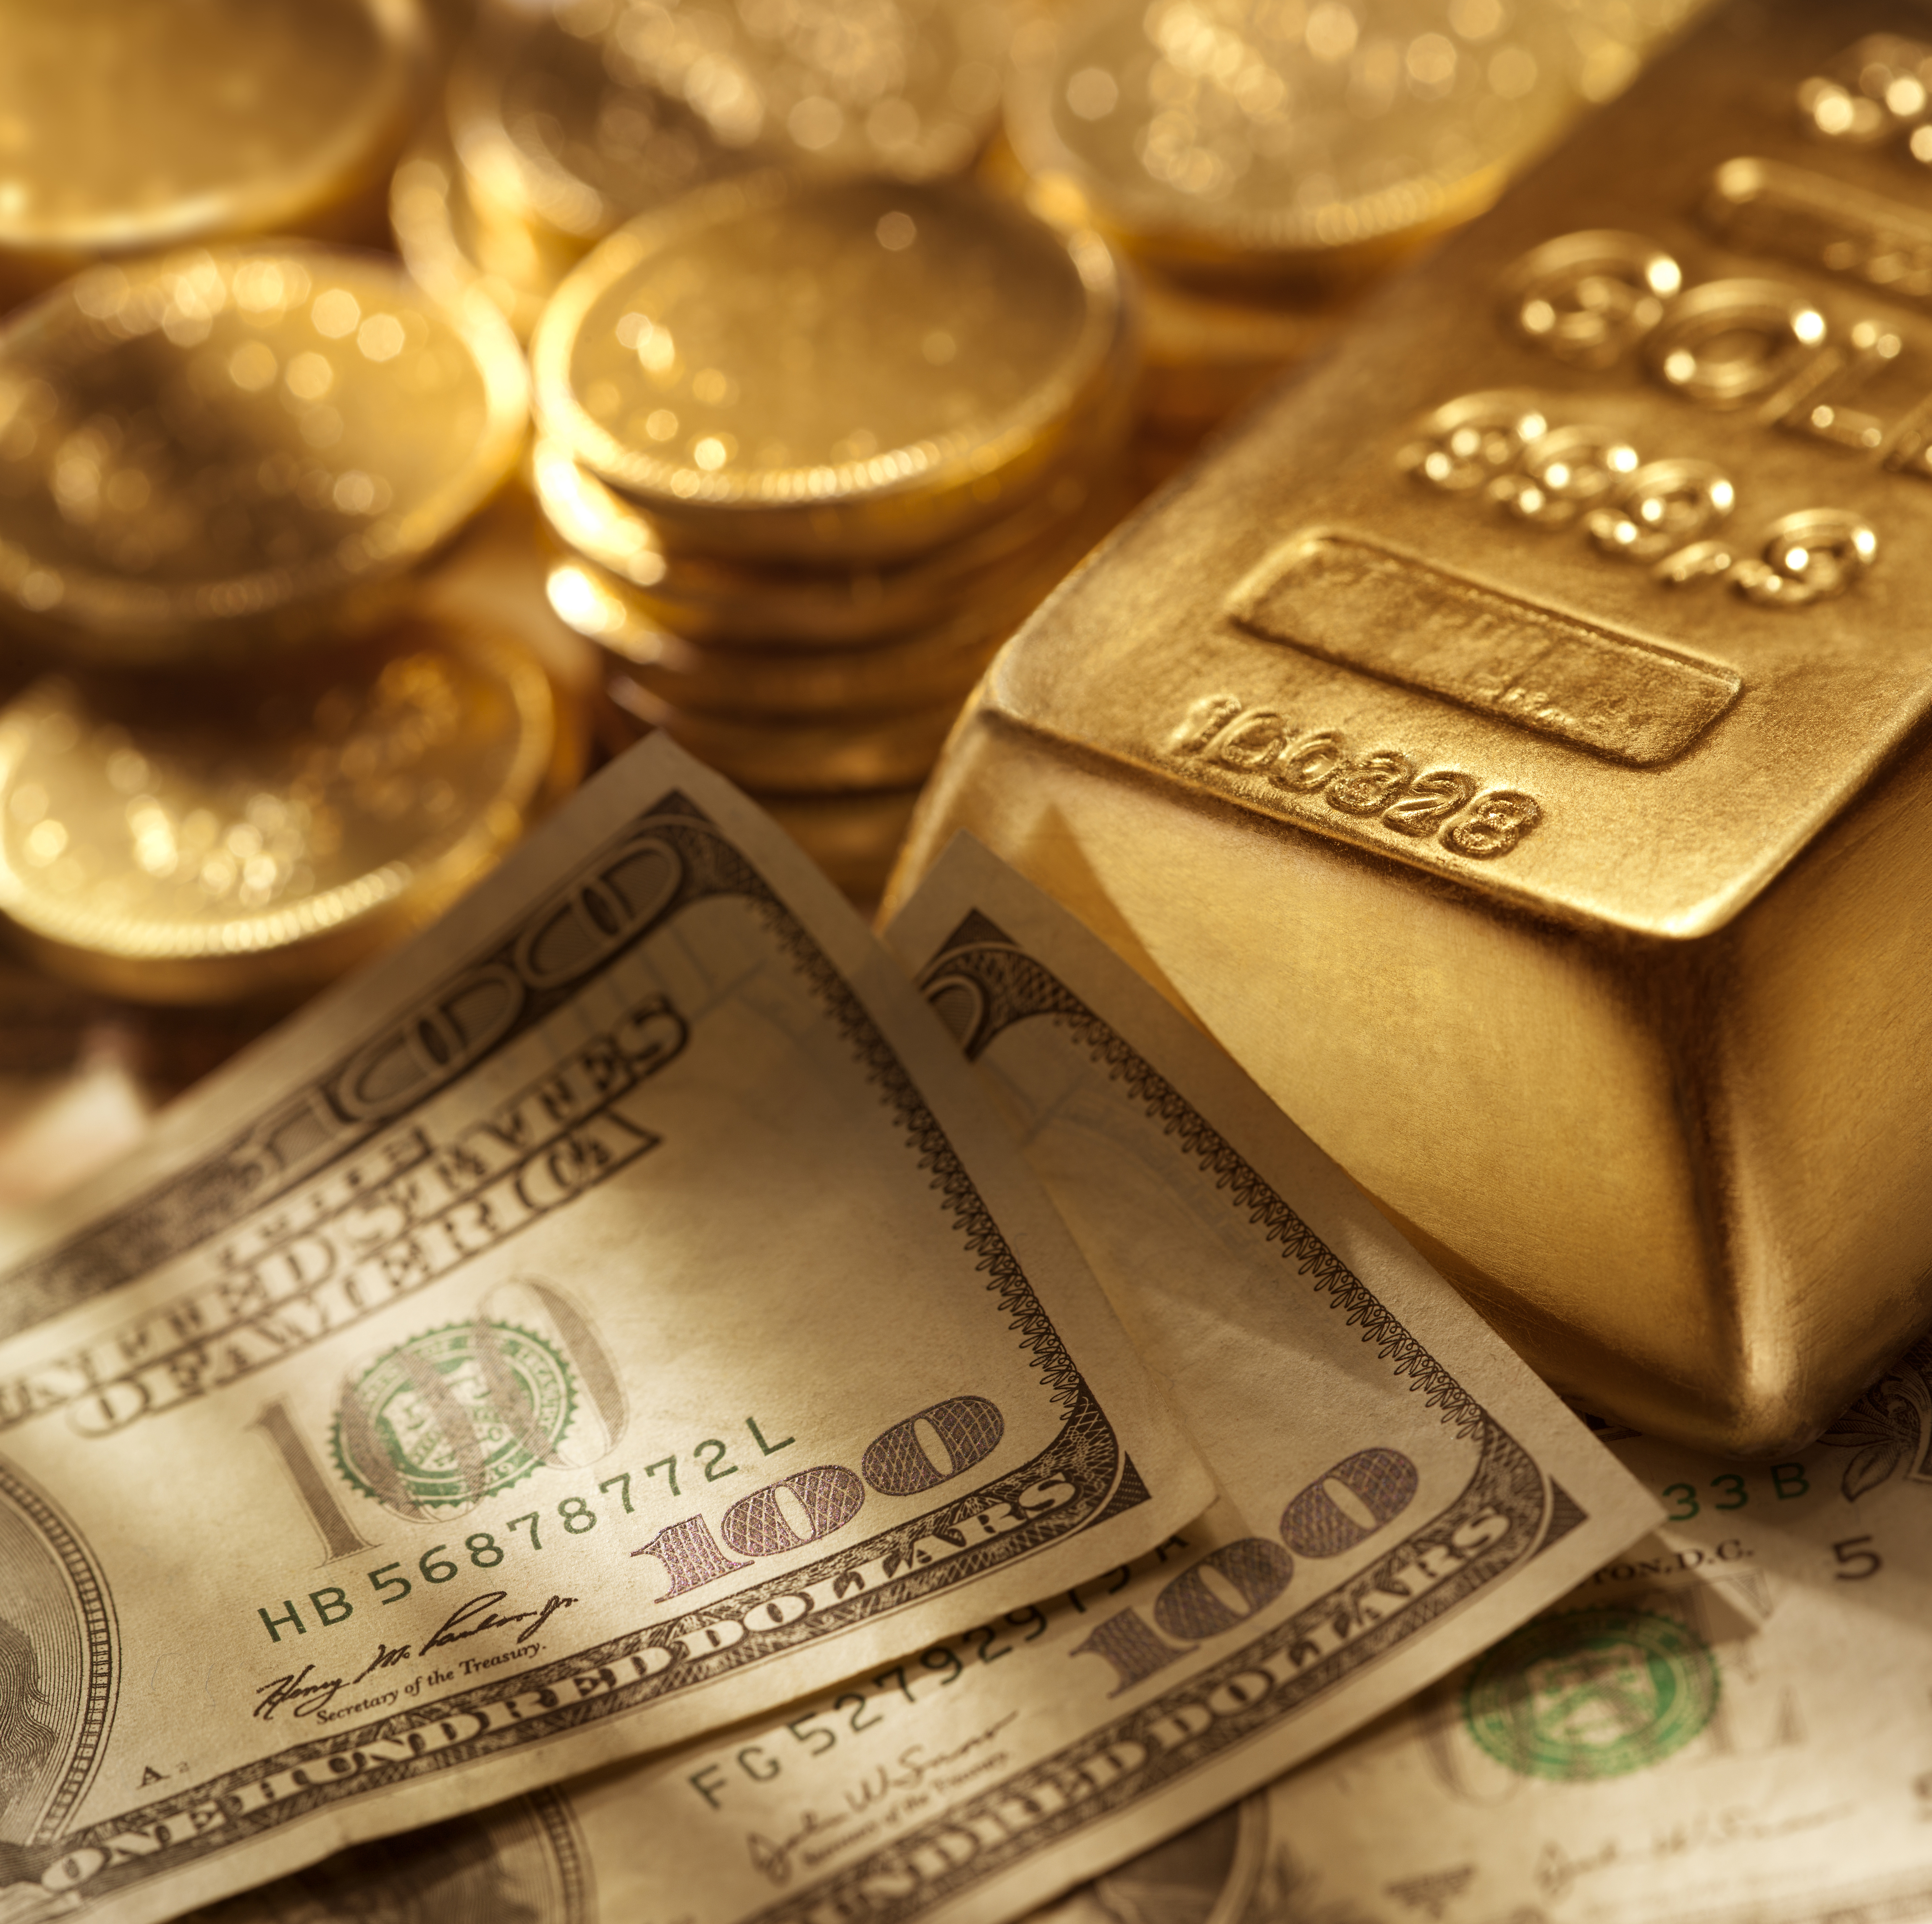 Hundred dollar bills surrounded by gold